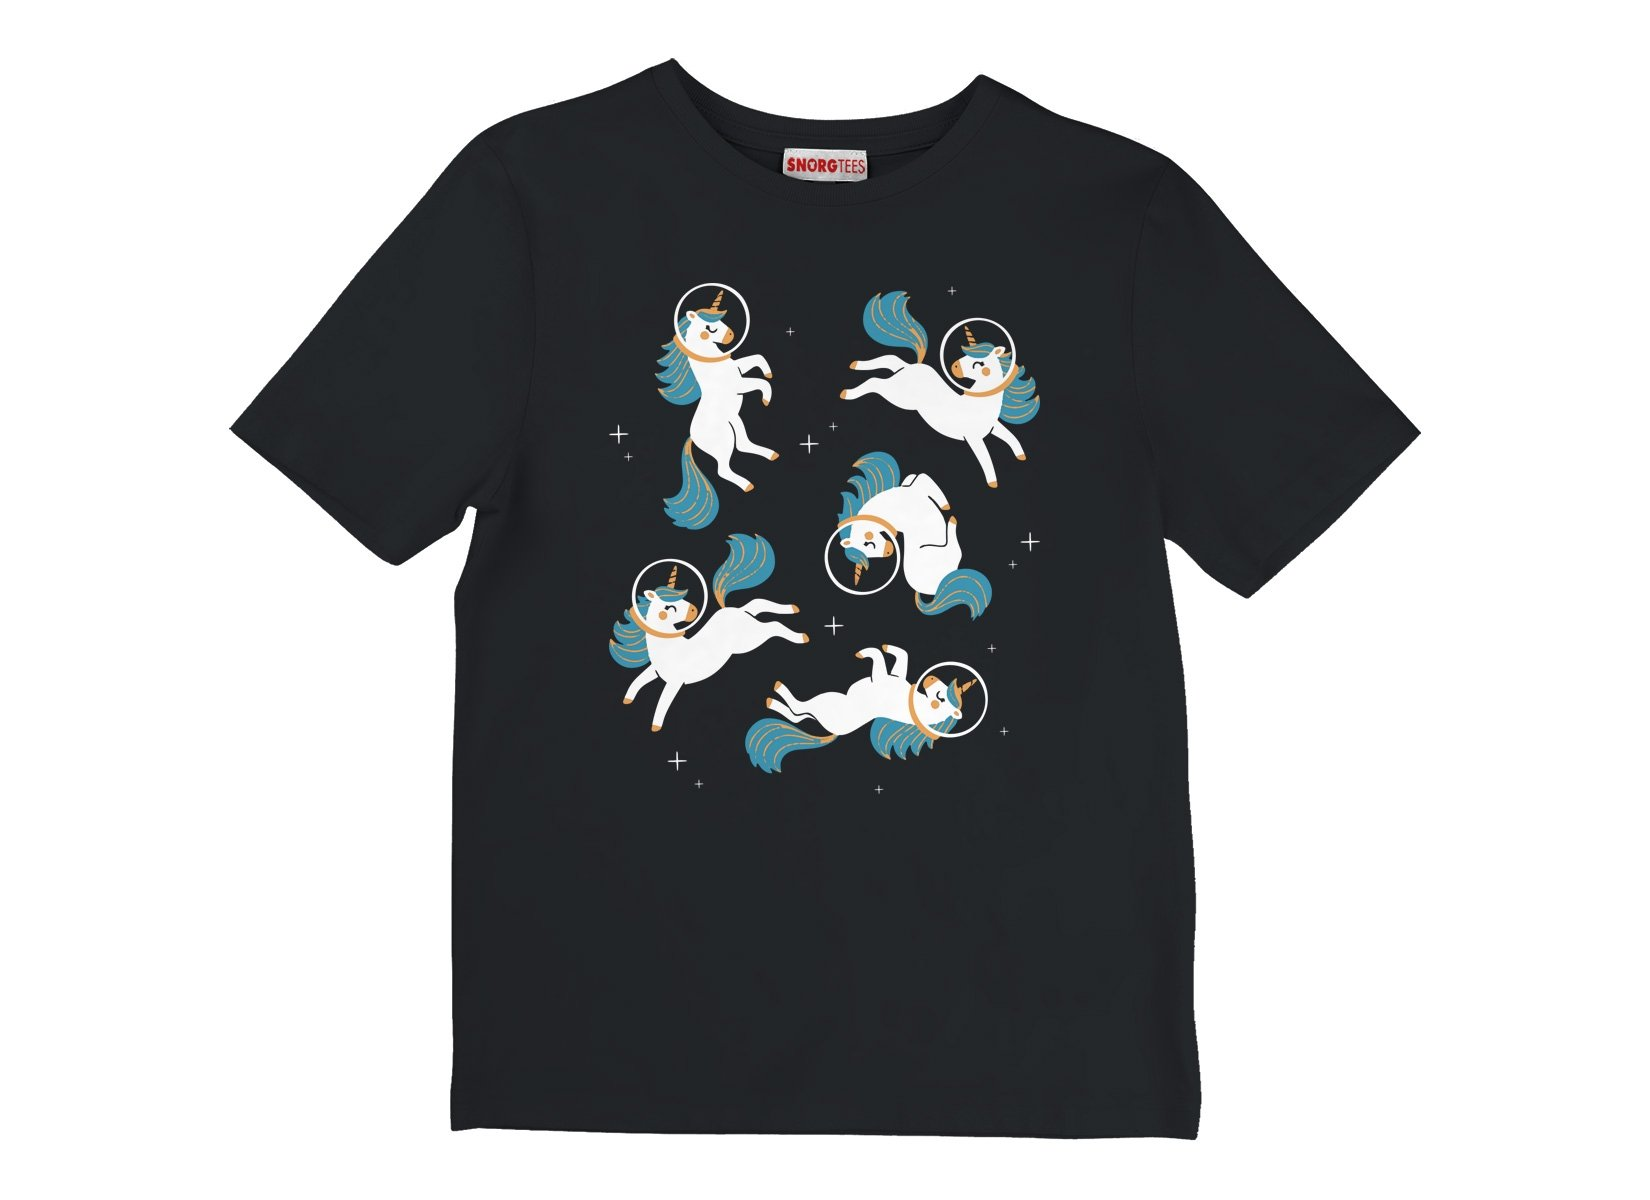 Unicorns In Space on Kids T-Shirt